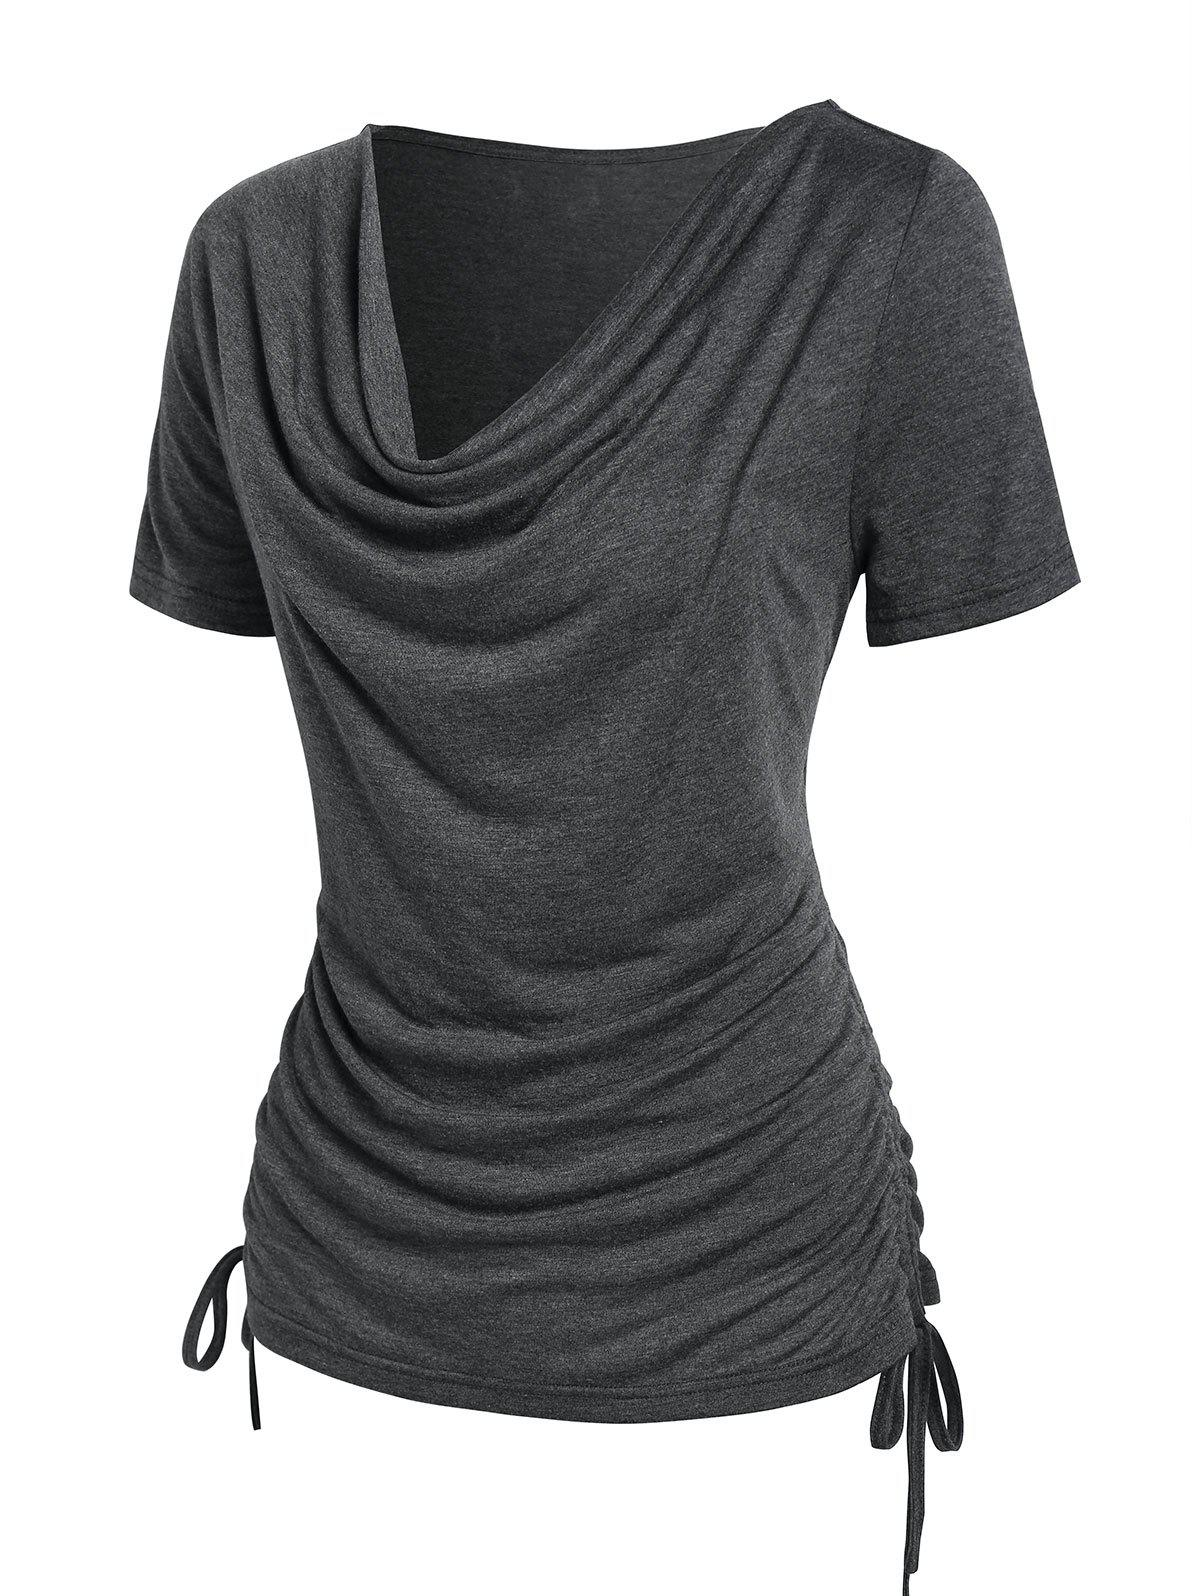 Shop Cowl Neck Ruched Cinched T-shirt